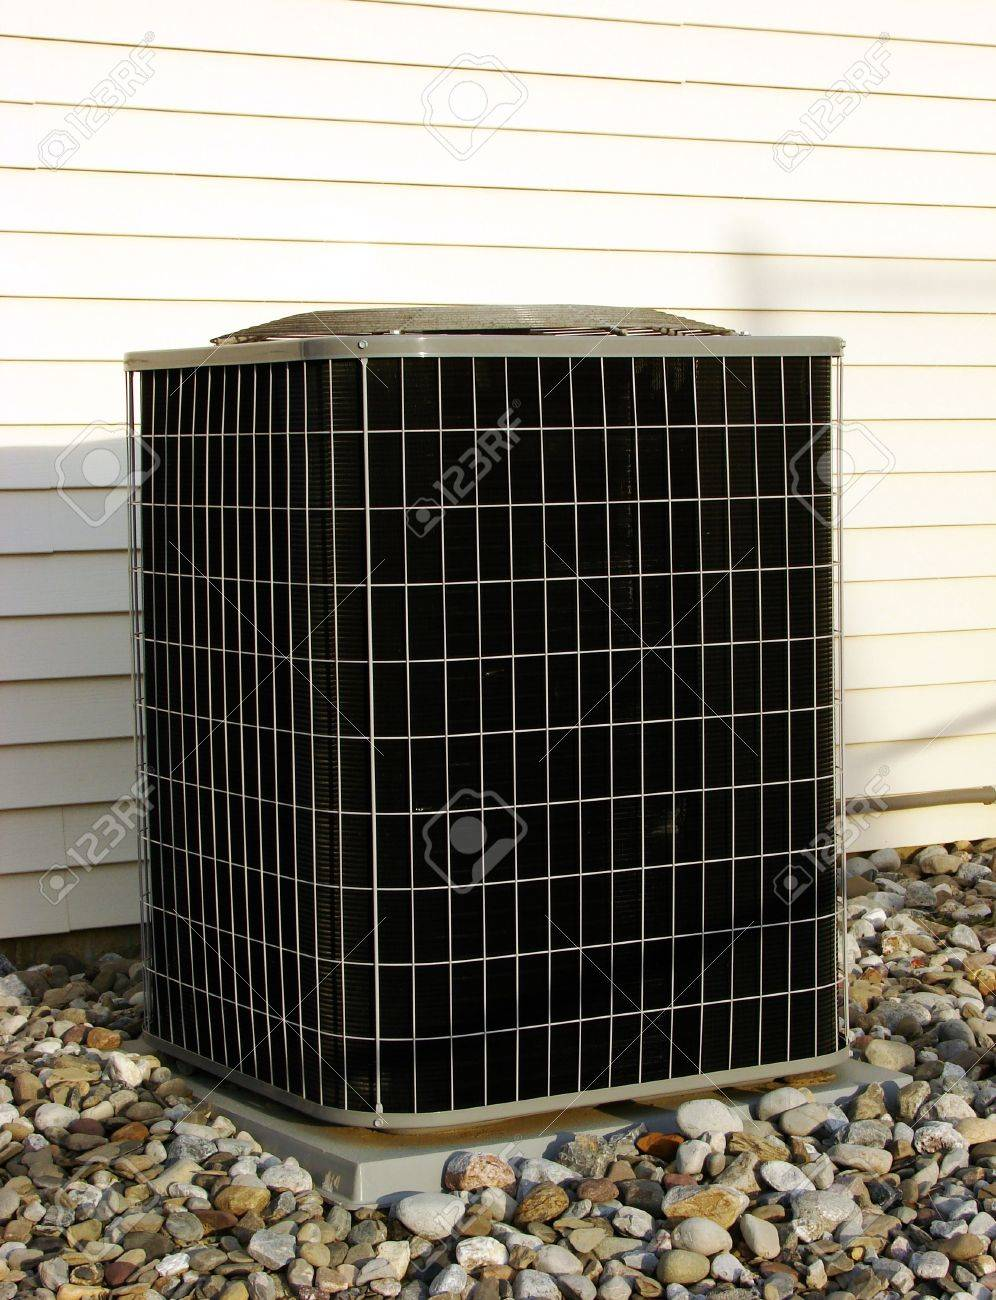 Residential air conditioner outside compressor and condenser unit Stock Photo - 2226869